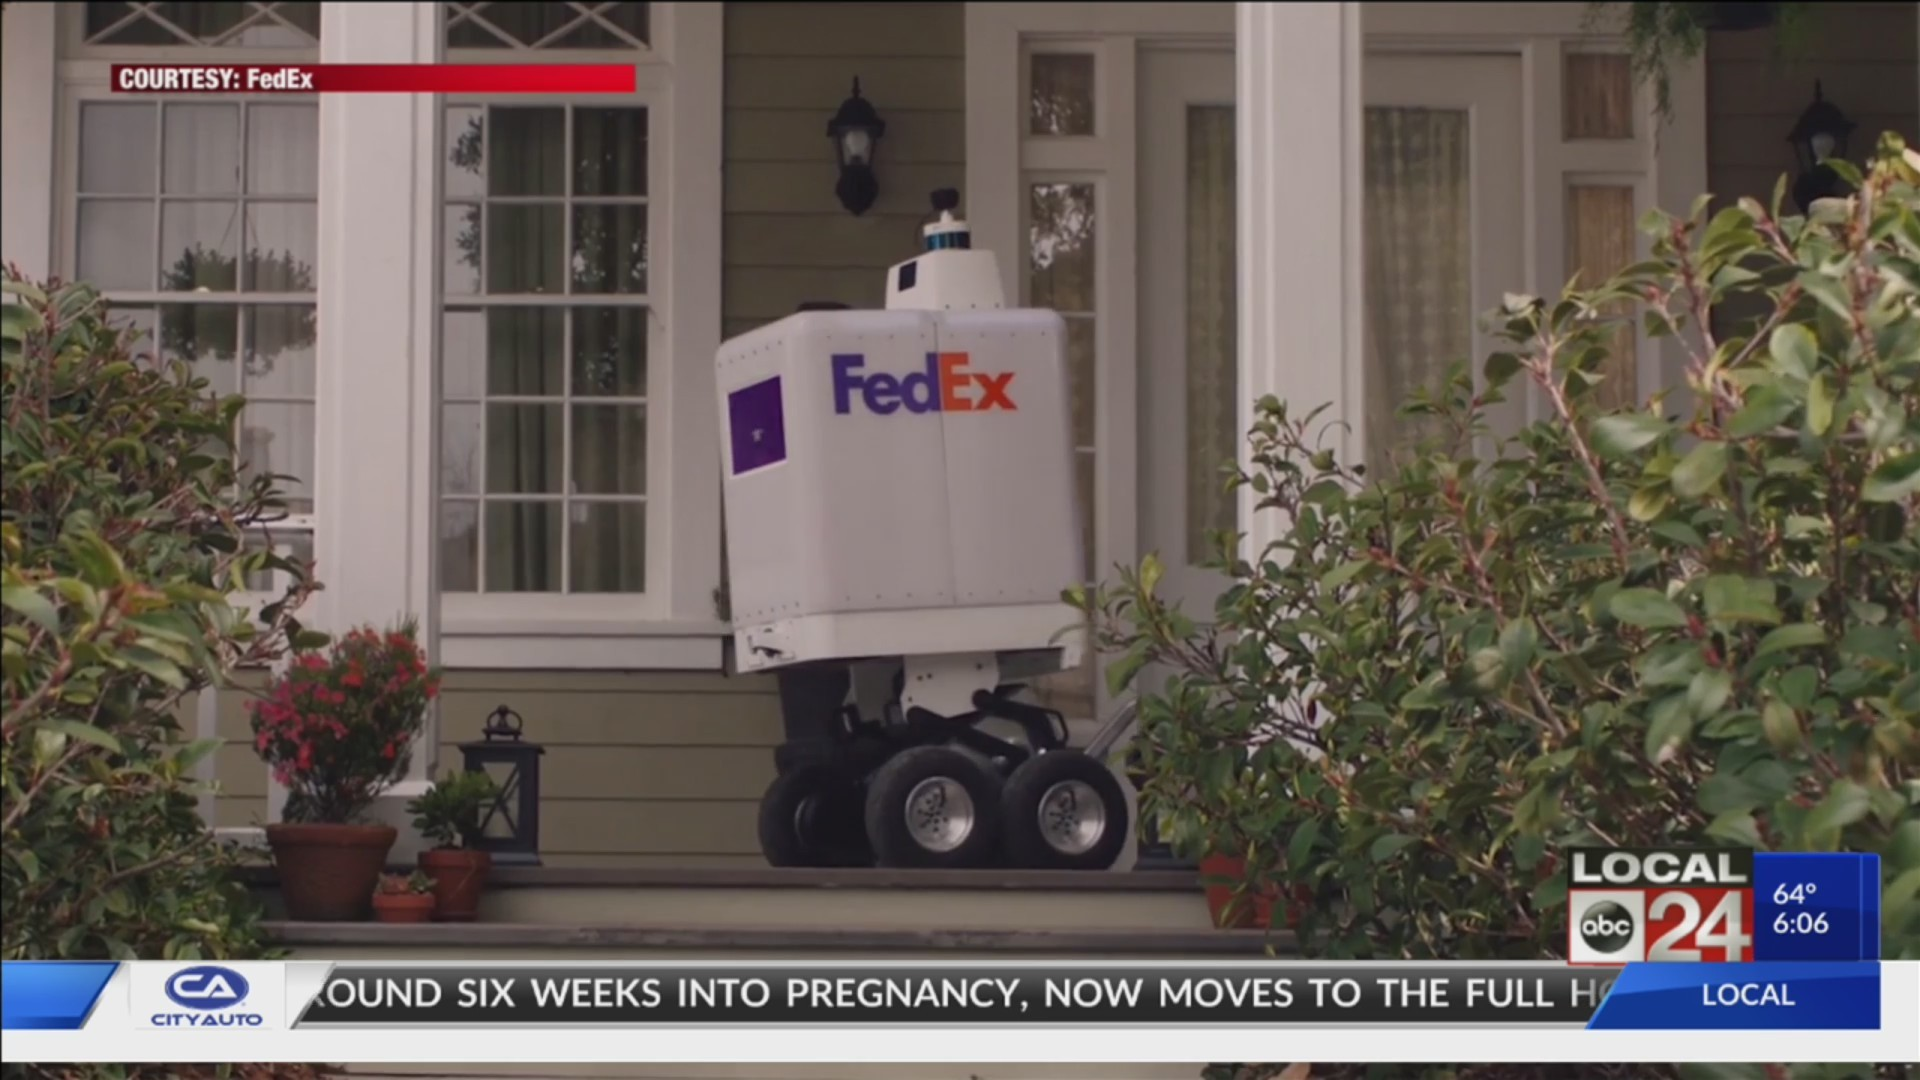 FedEx Rolls Out New Delivery Option - Robots - With SameDay